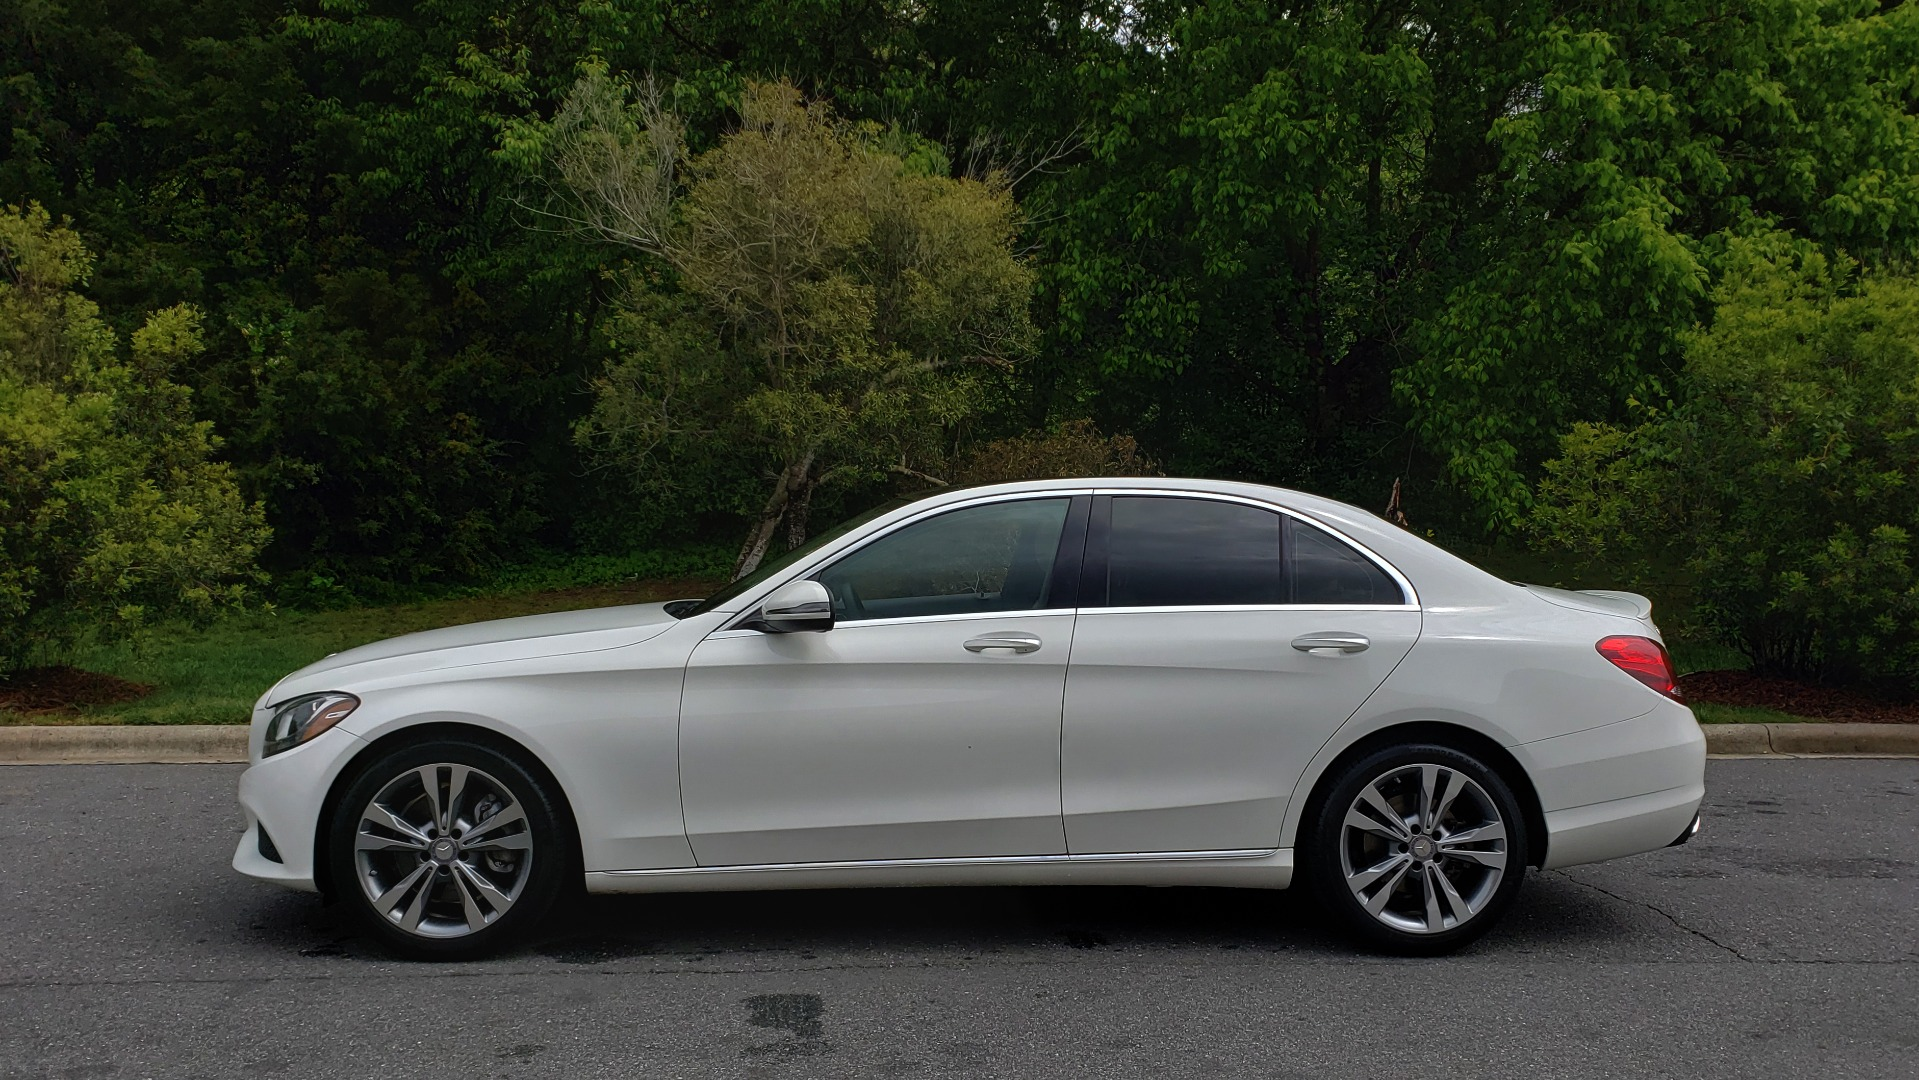 Used 2017 Mercedes-Benz C-Class C 300 PREMIUM / NAV / PANO-ROOF / HTD STS / REARVIEW for sale Sold at Formula Imports in Charlotte NC 28227 2